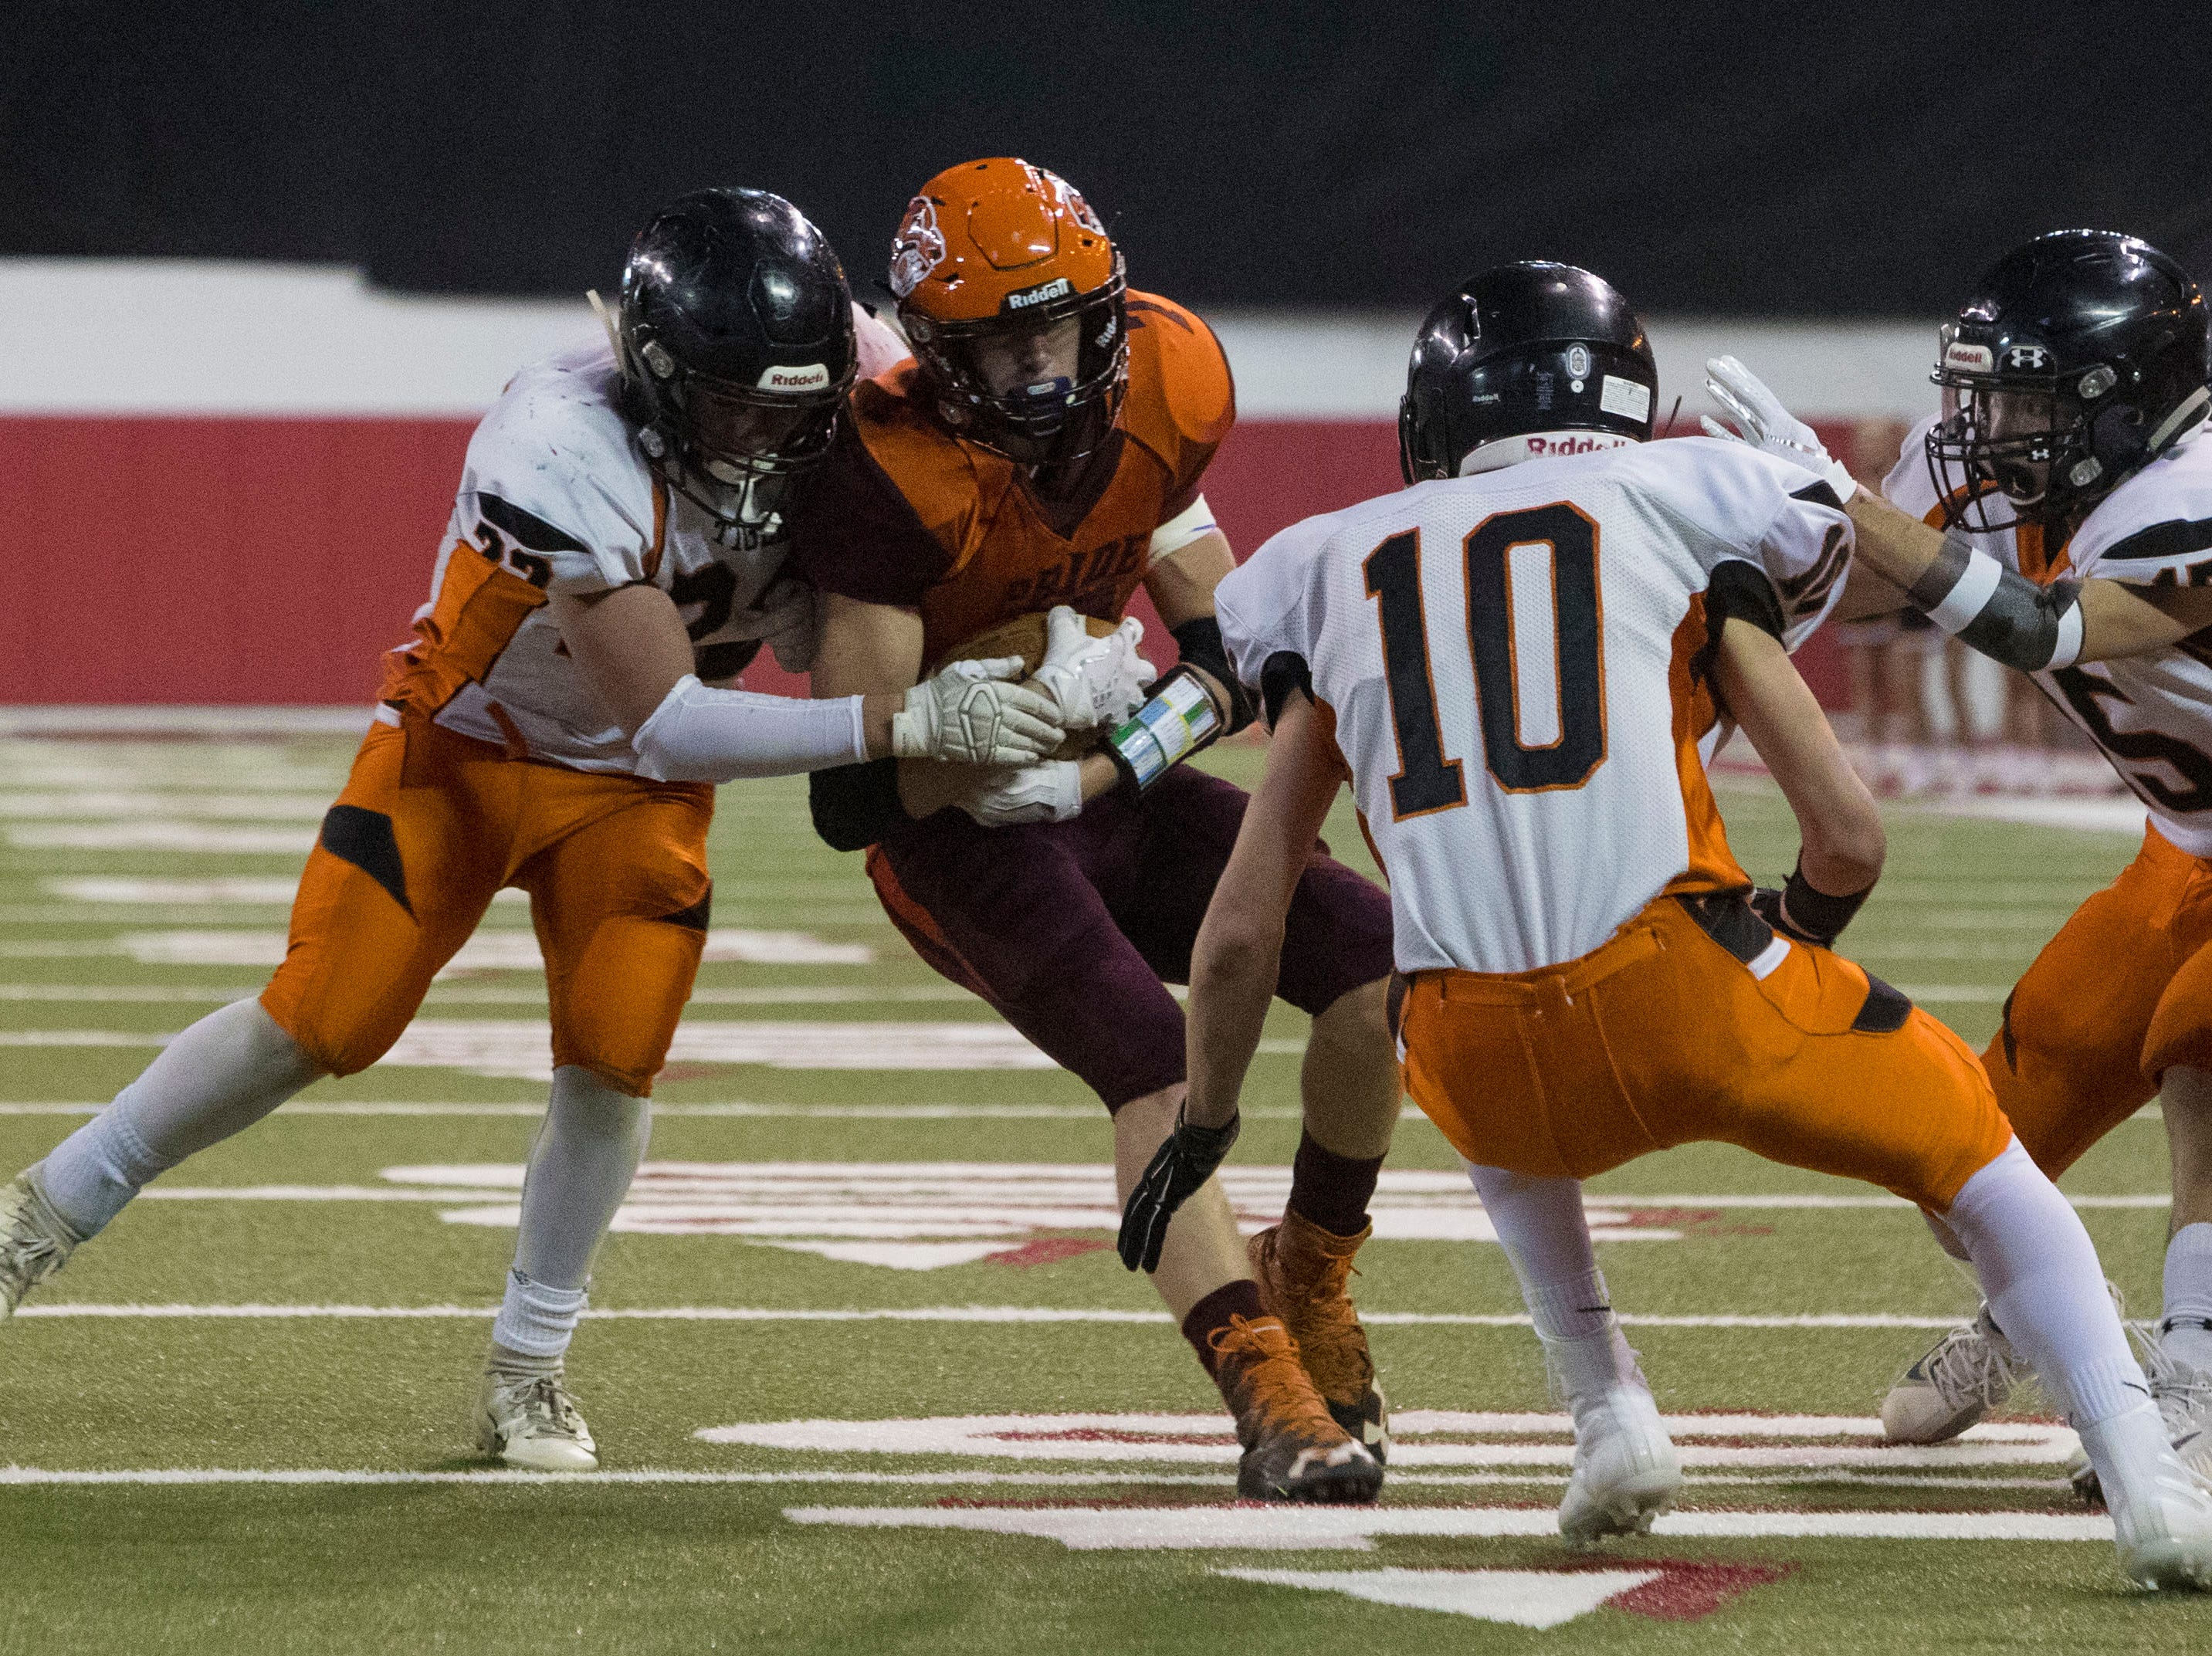 Canistota/Freeman's Braxton Schmidt (7) gets tackled during a game against Howard, Thursday, Nov. 8, 2018 at the DakotaDome in Vermillion, S.D.